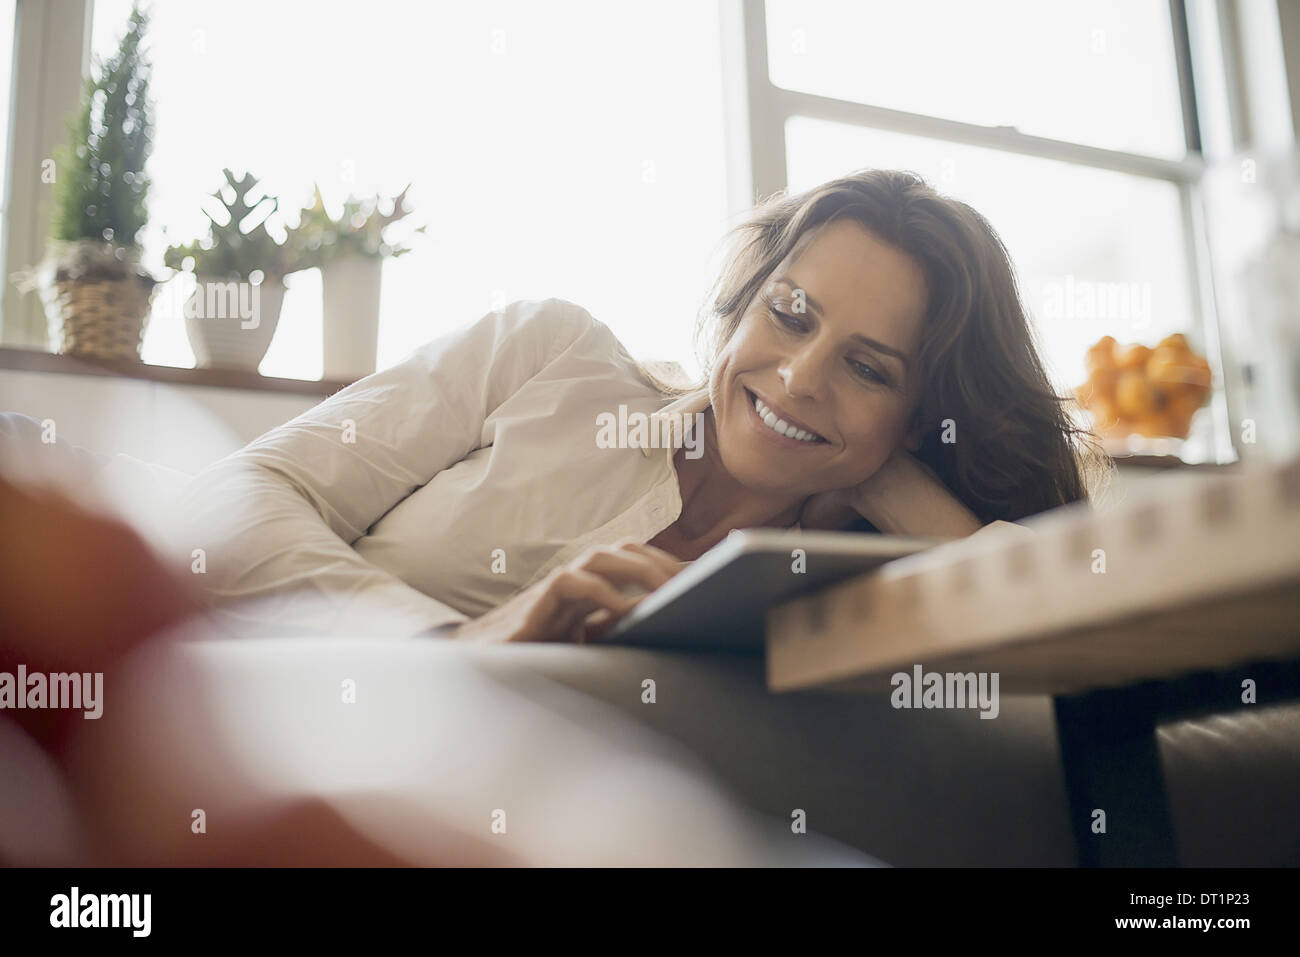 Woman at home using electronic tablet - Stock Image